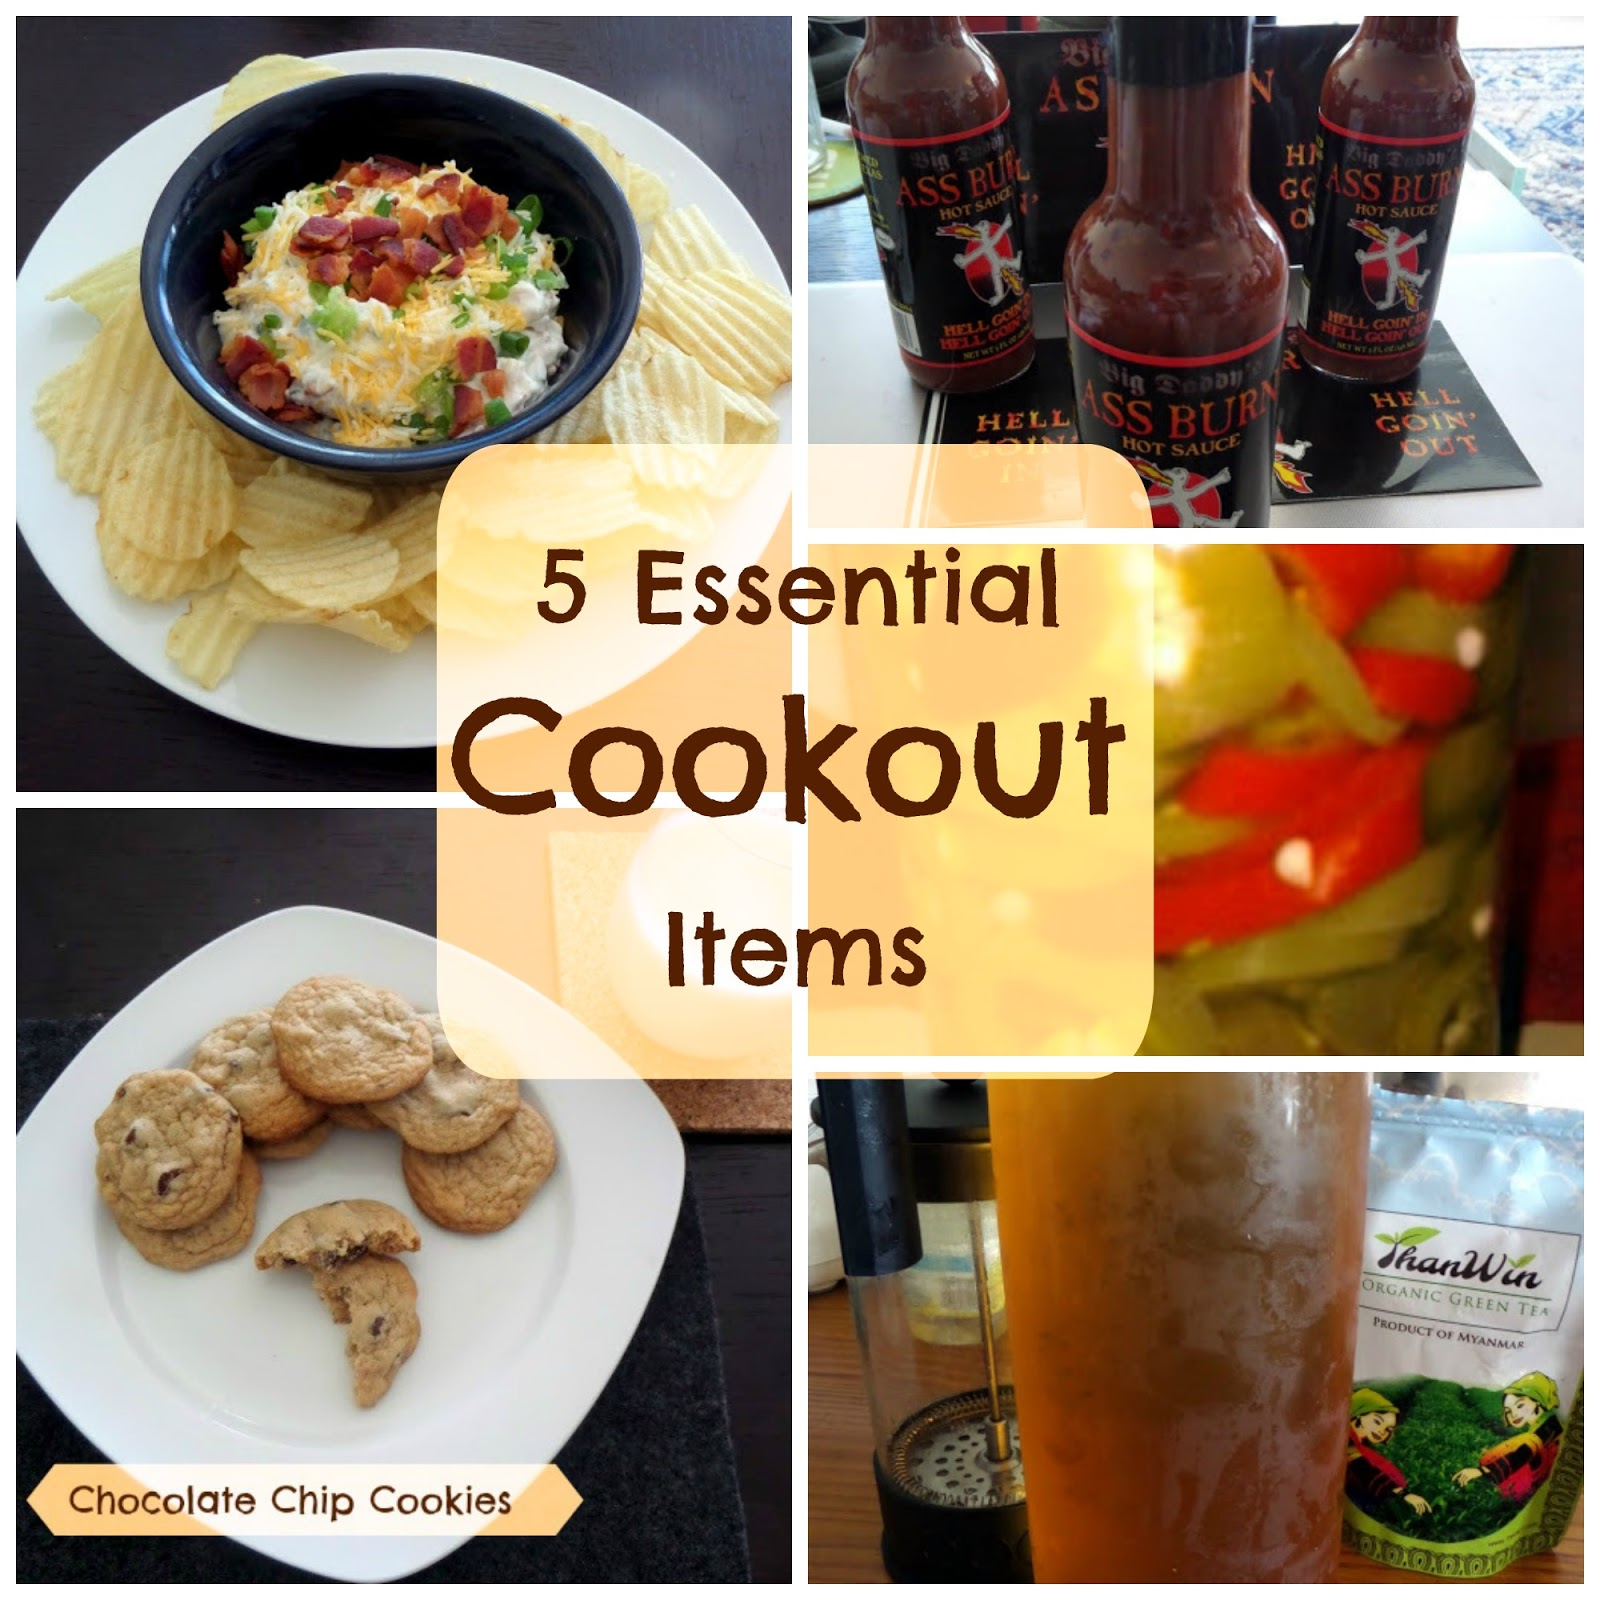 5 Cookout Essentials:  My 5 most important food items to have at a good cookout.